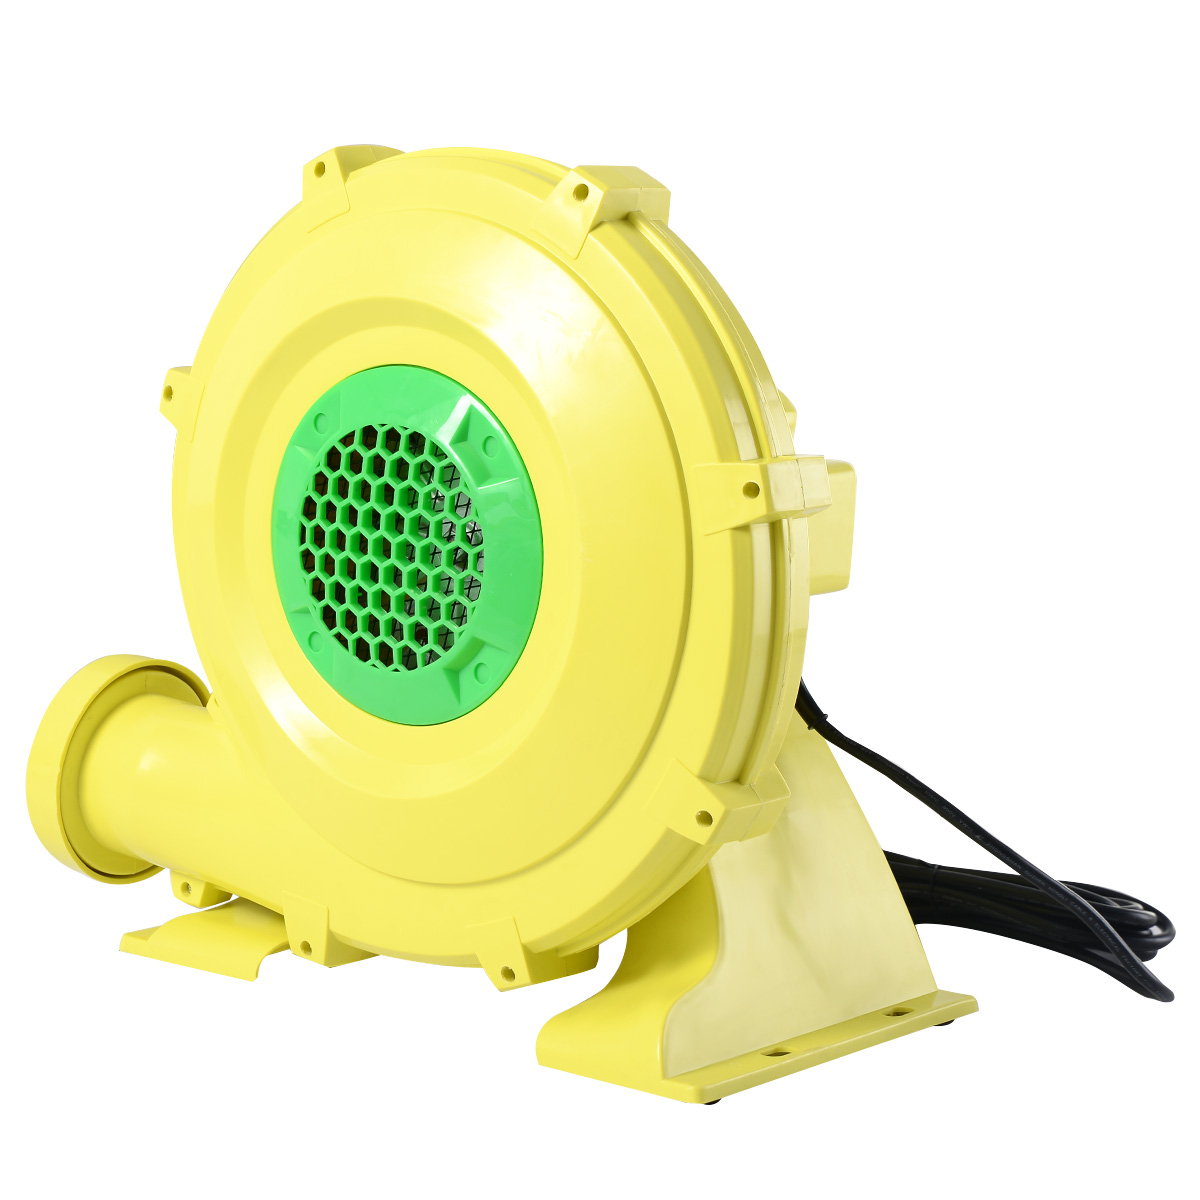 Goplus 950 W 1.25 HP Inflatable Bouncy Bounce House Castle Air Blower Pump Fan